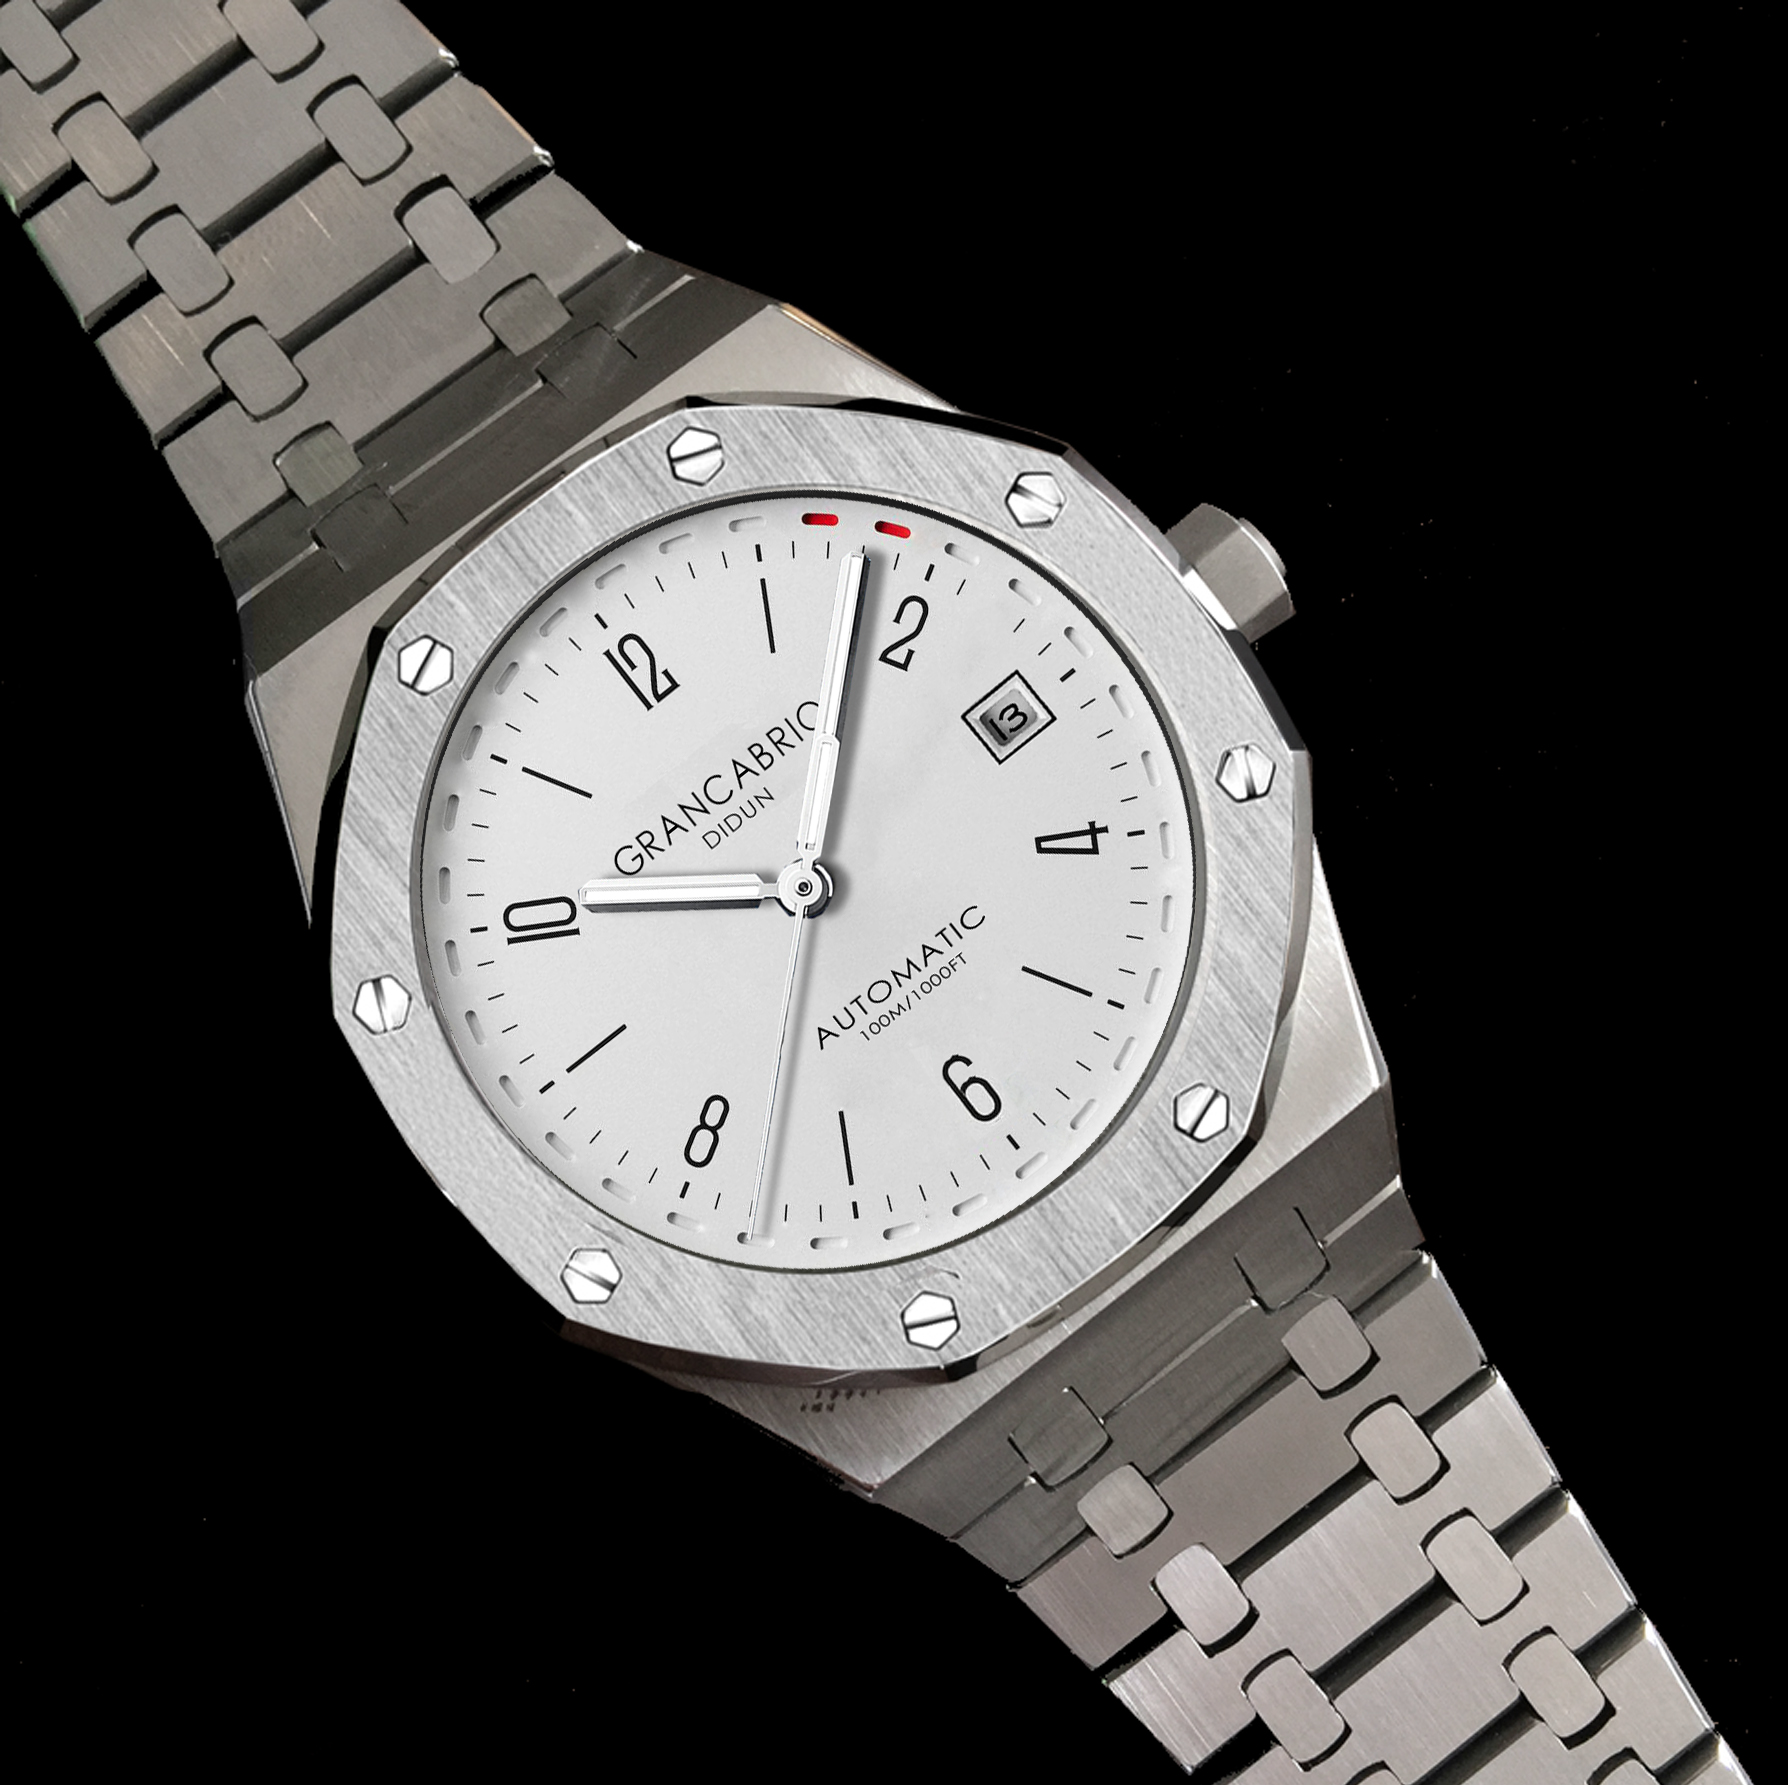 DIDUN Men Watch Top Brand Luxury Japan Movement Mechanical Automatic Watch Fashion Sports Watch Steel Strap Waterproof Watch